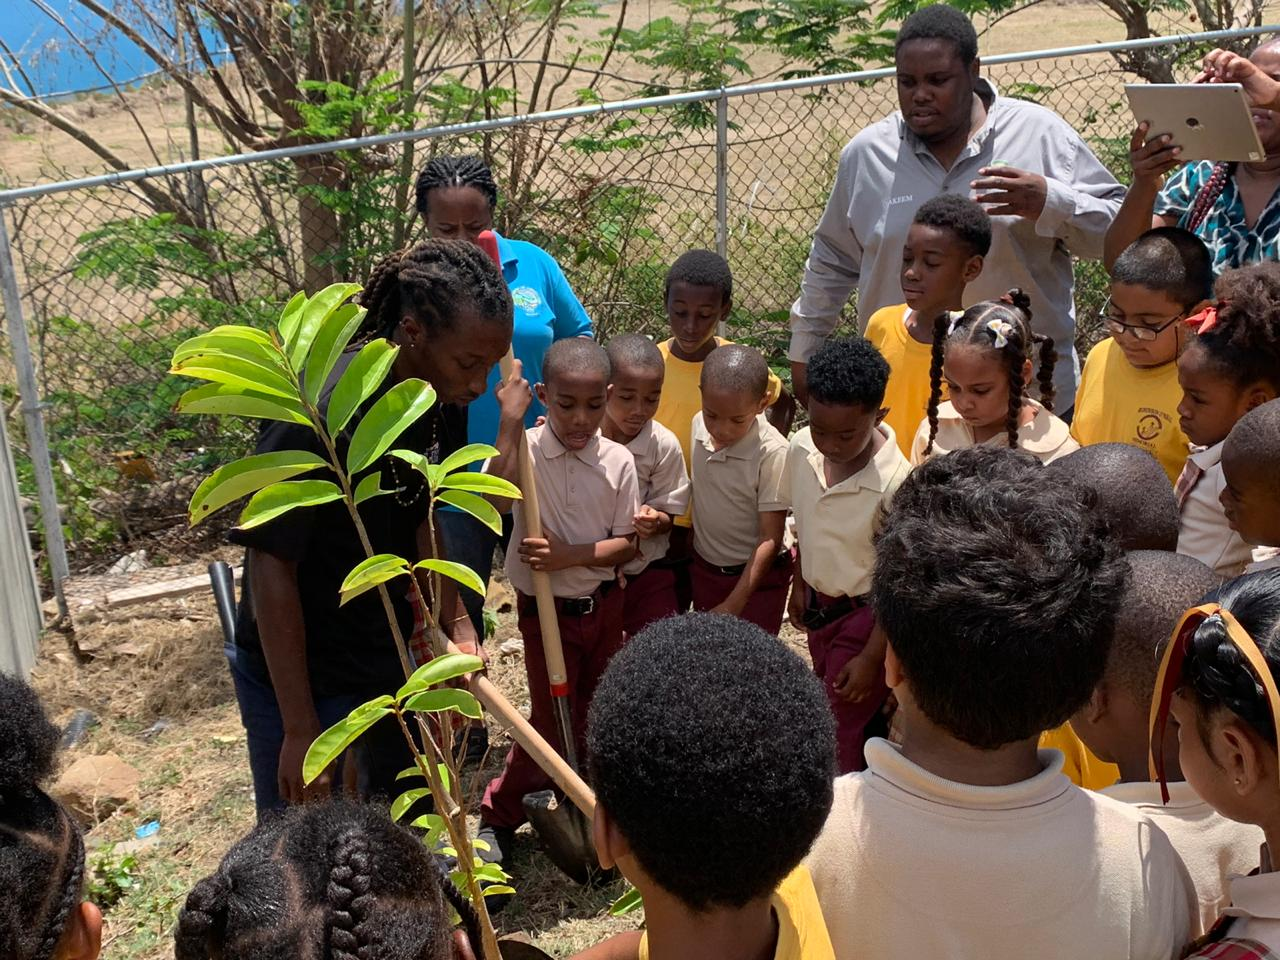 Jahnai Caul and Akeem Leonard of Greencrete VI plant a Caribbean Cherry tree and Soursop tree with students.